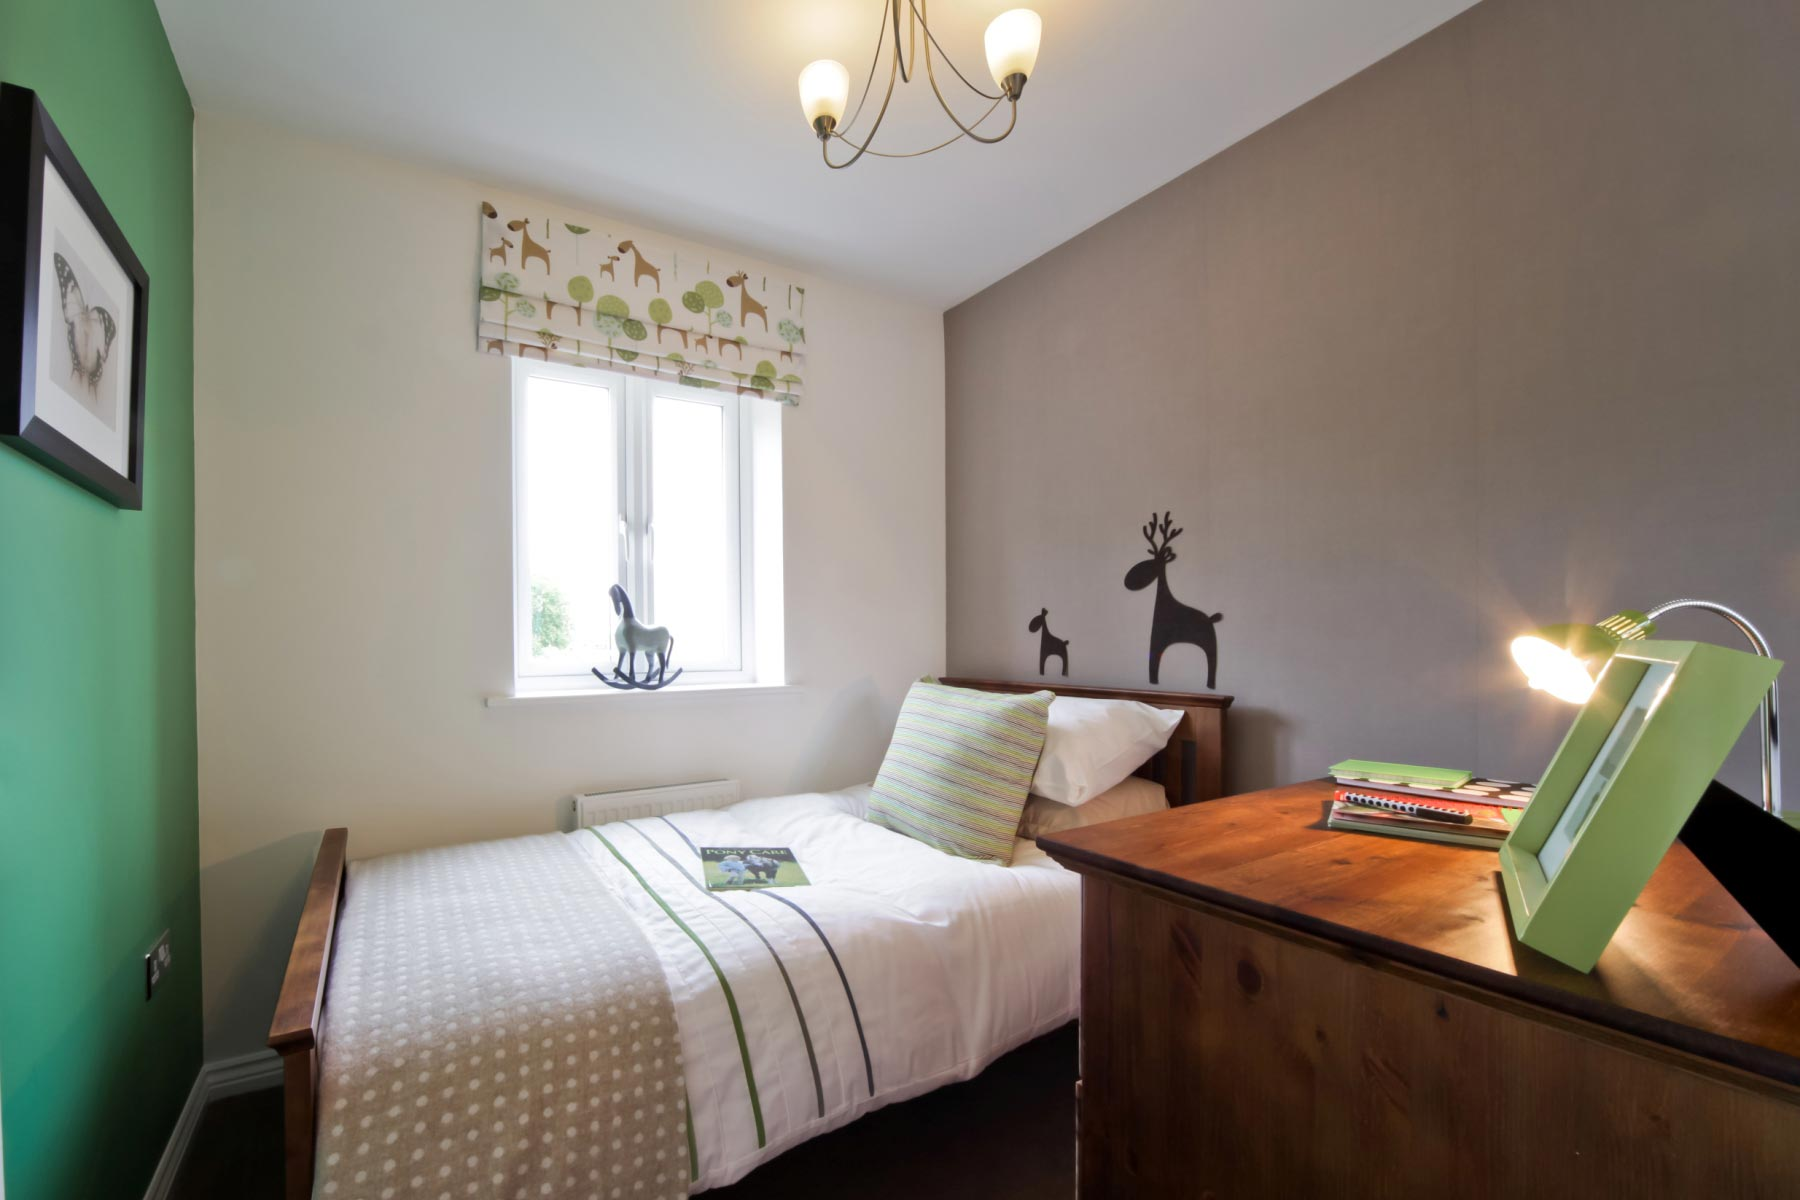 Taylor Wimpey - Typical 3rd bedroom